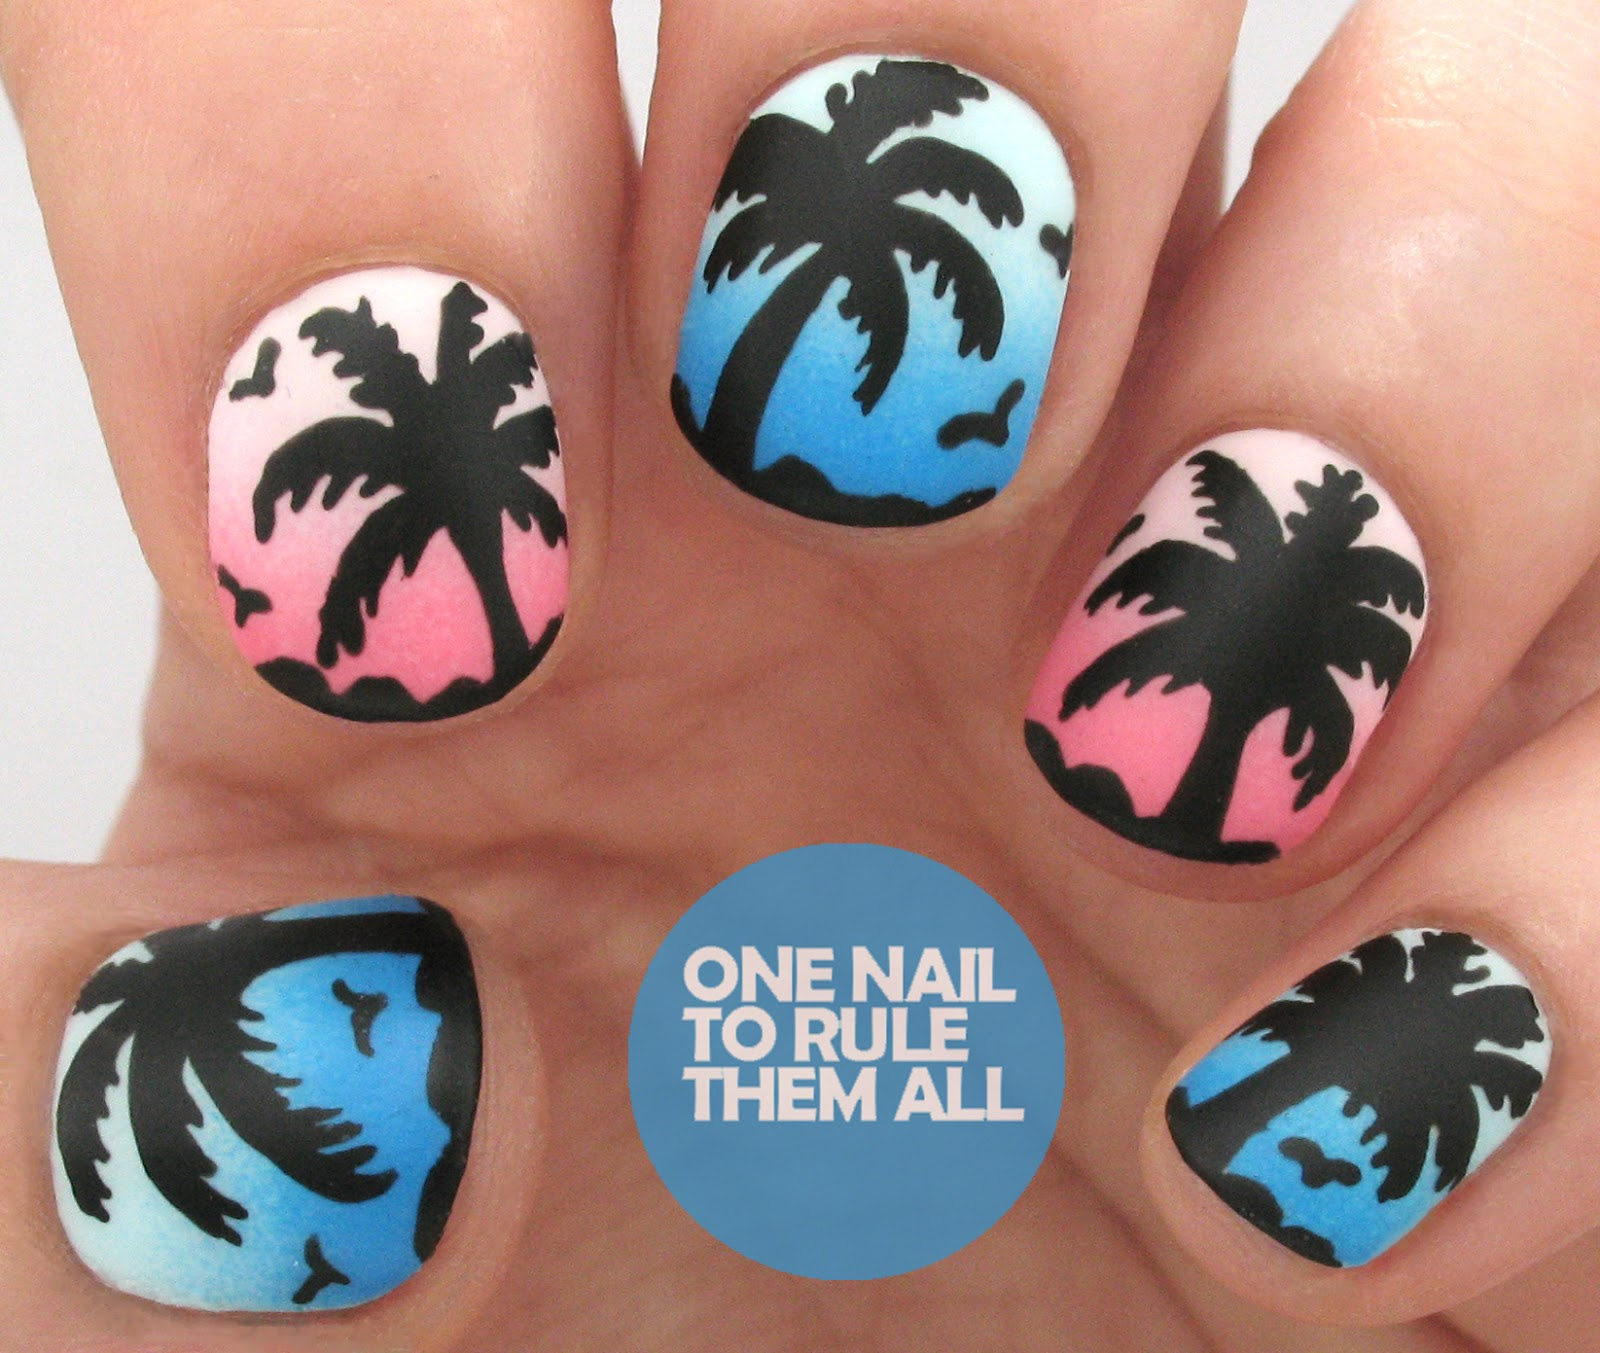 One Nail To Rule Them All Barry M Nail Art Pens Review: One Nail To Rule Them All: Tutorial Tuesday: Palm Trees